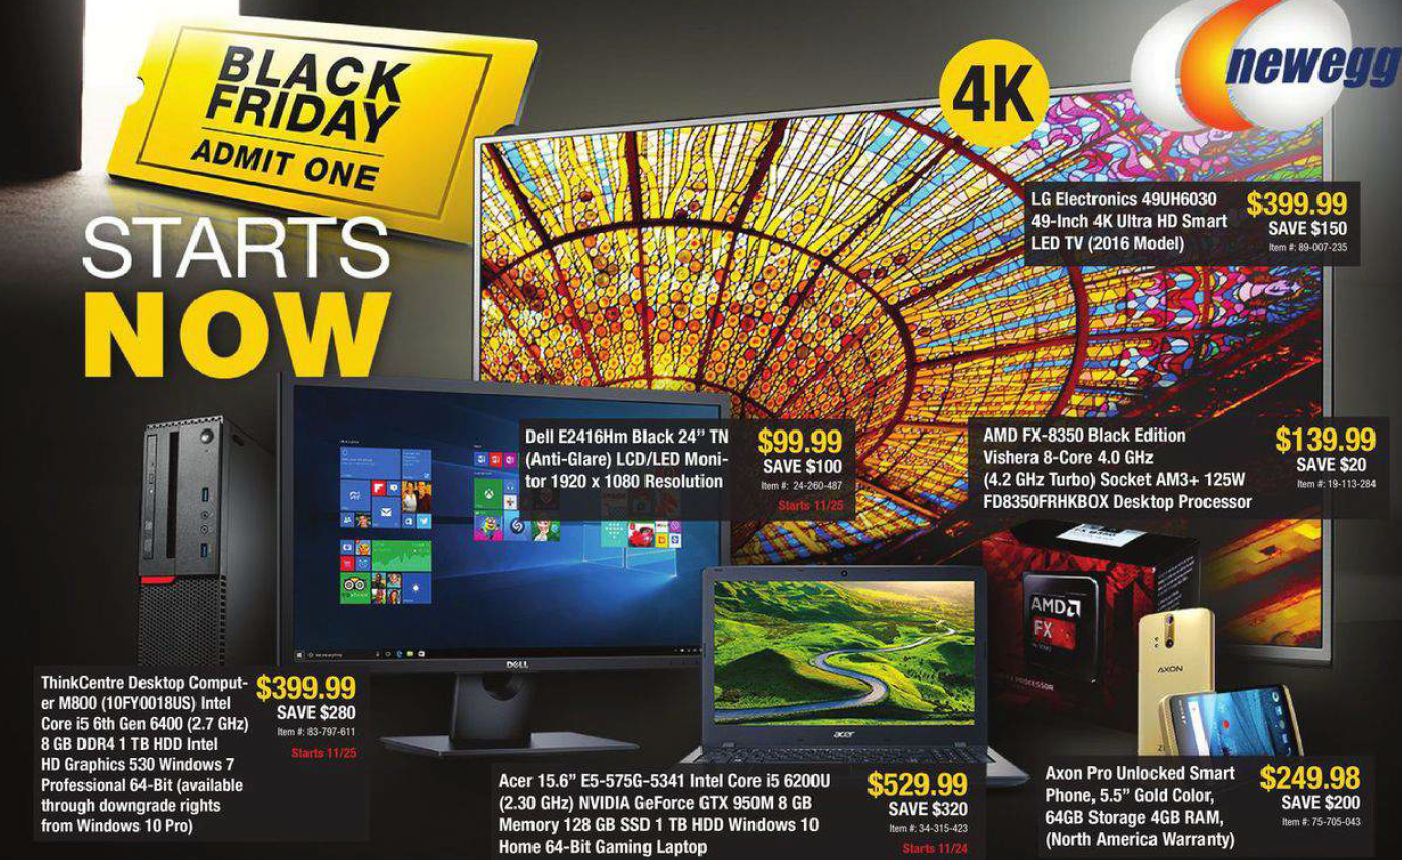 newegg-black-friday-ad-leak-deals